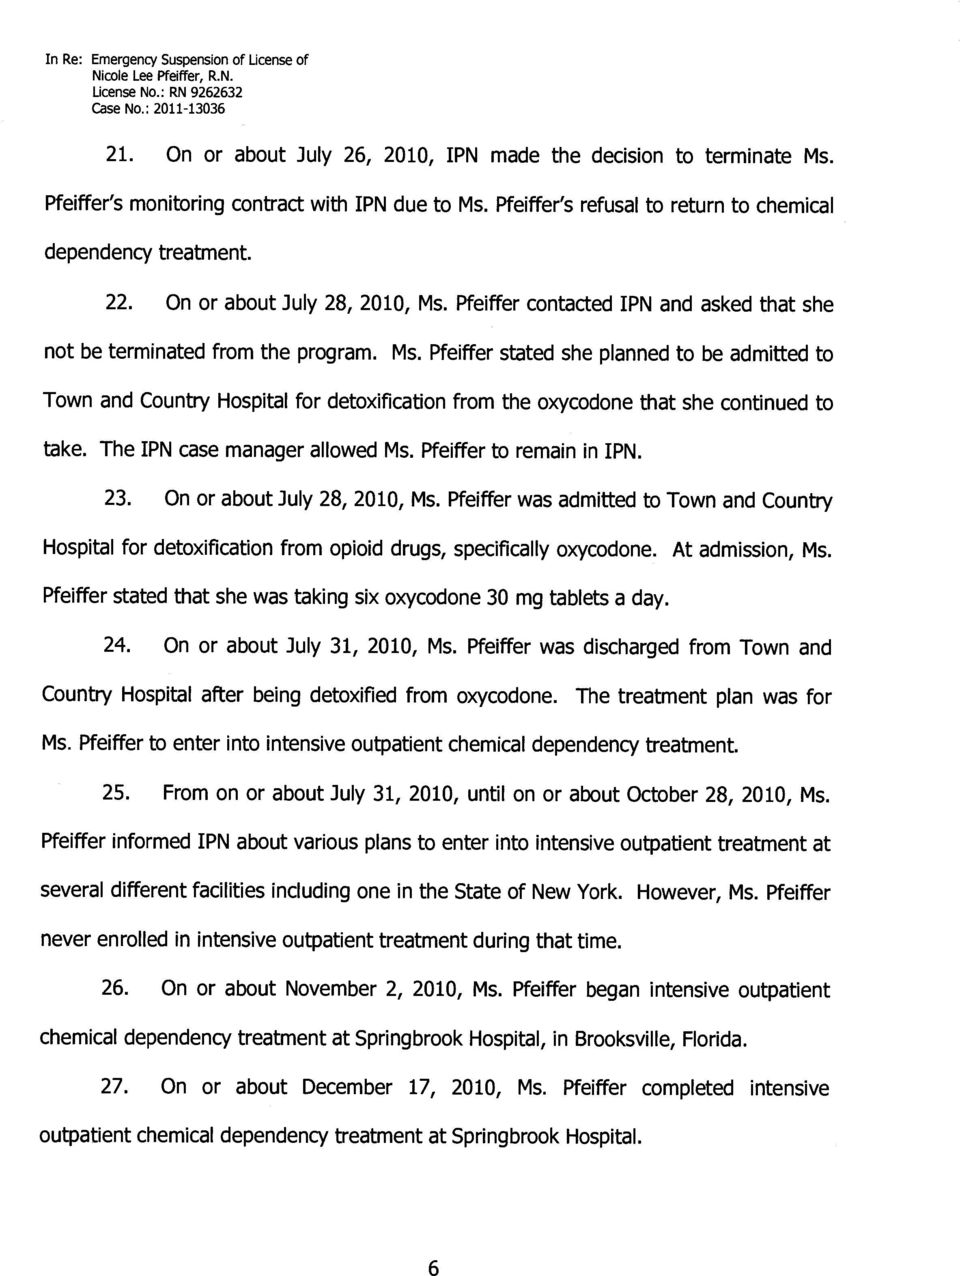 The IPN case manager allowed Ms. Pfeiffer to remain in IPN. 23. On or about July 28, 2010, Ms.